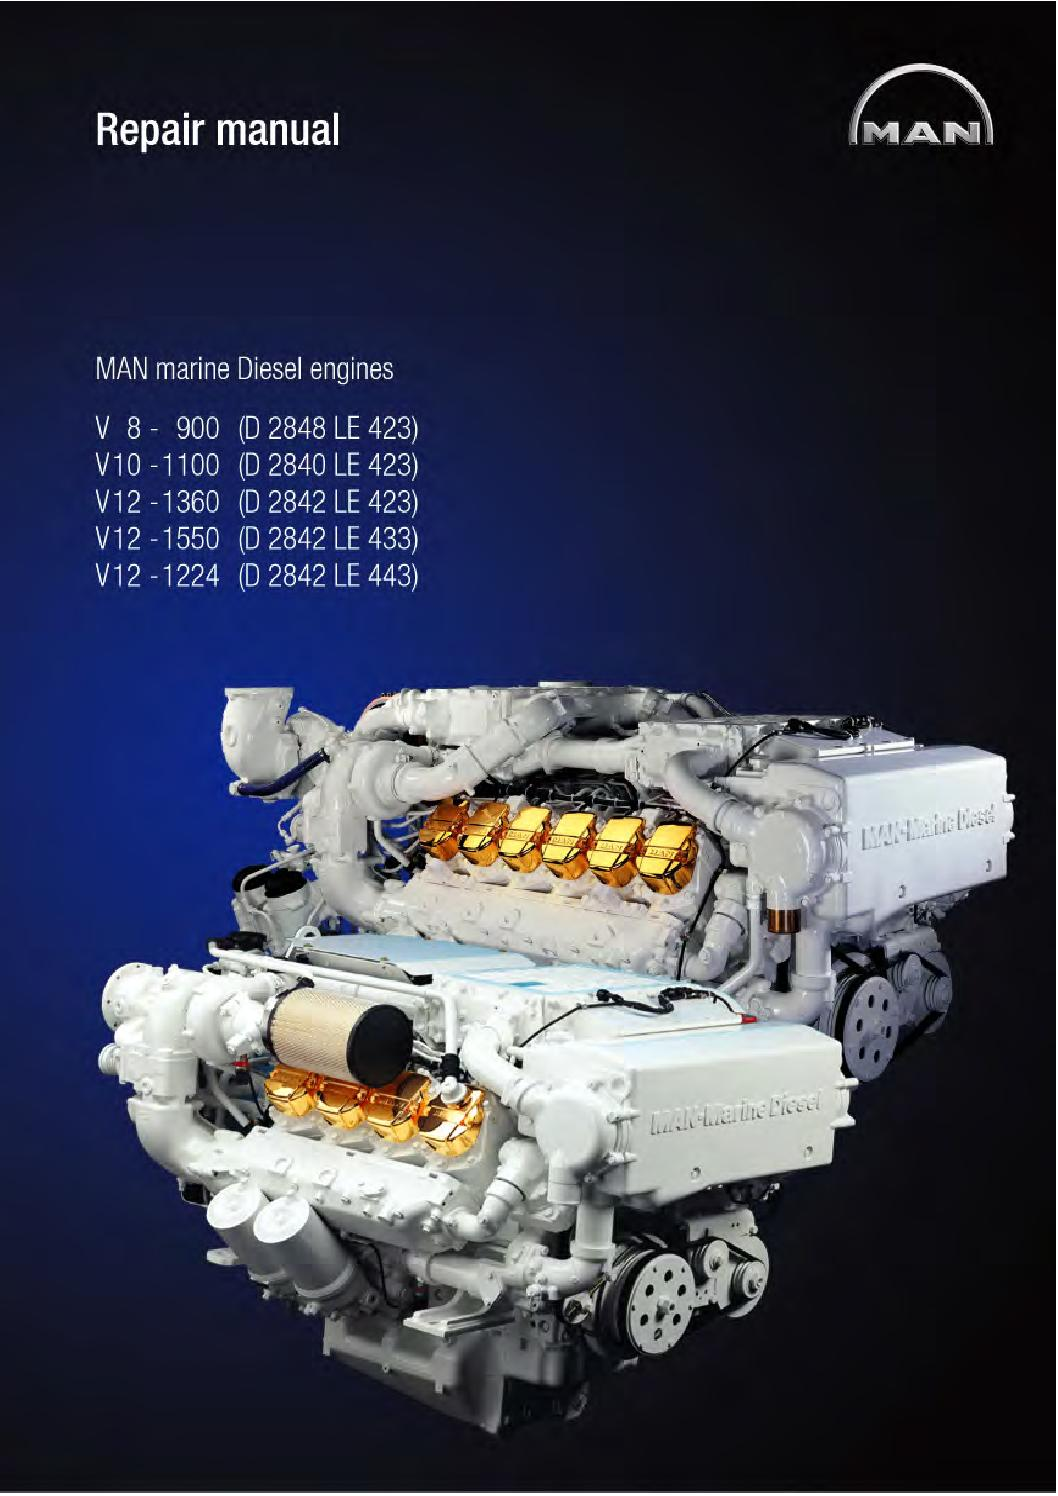 Hp Parts Store >> Man marine diesel engine v12 1360 (d 2842 le 423) service ...